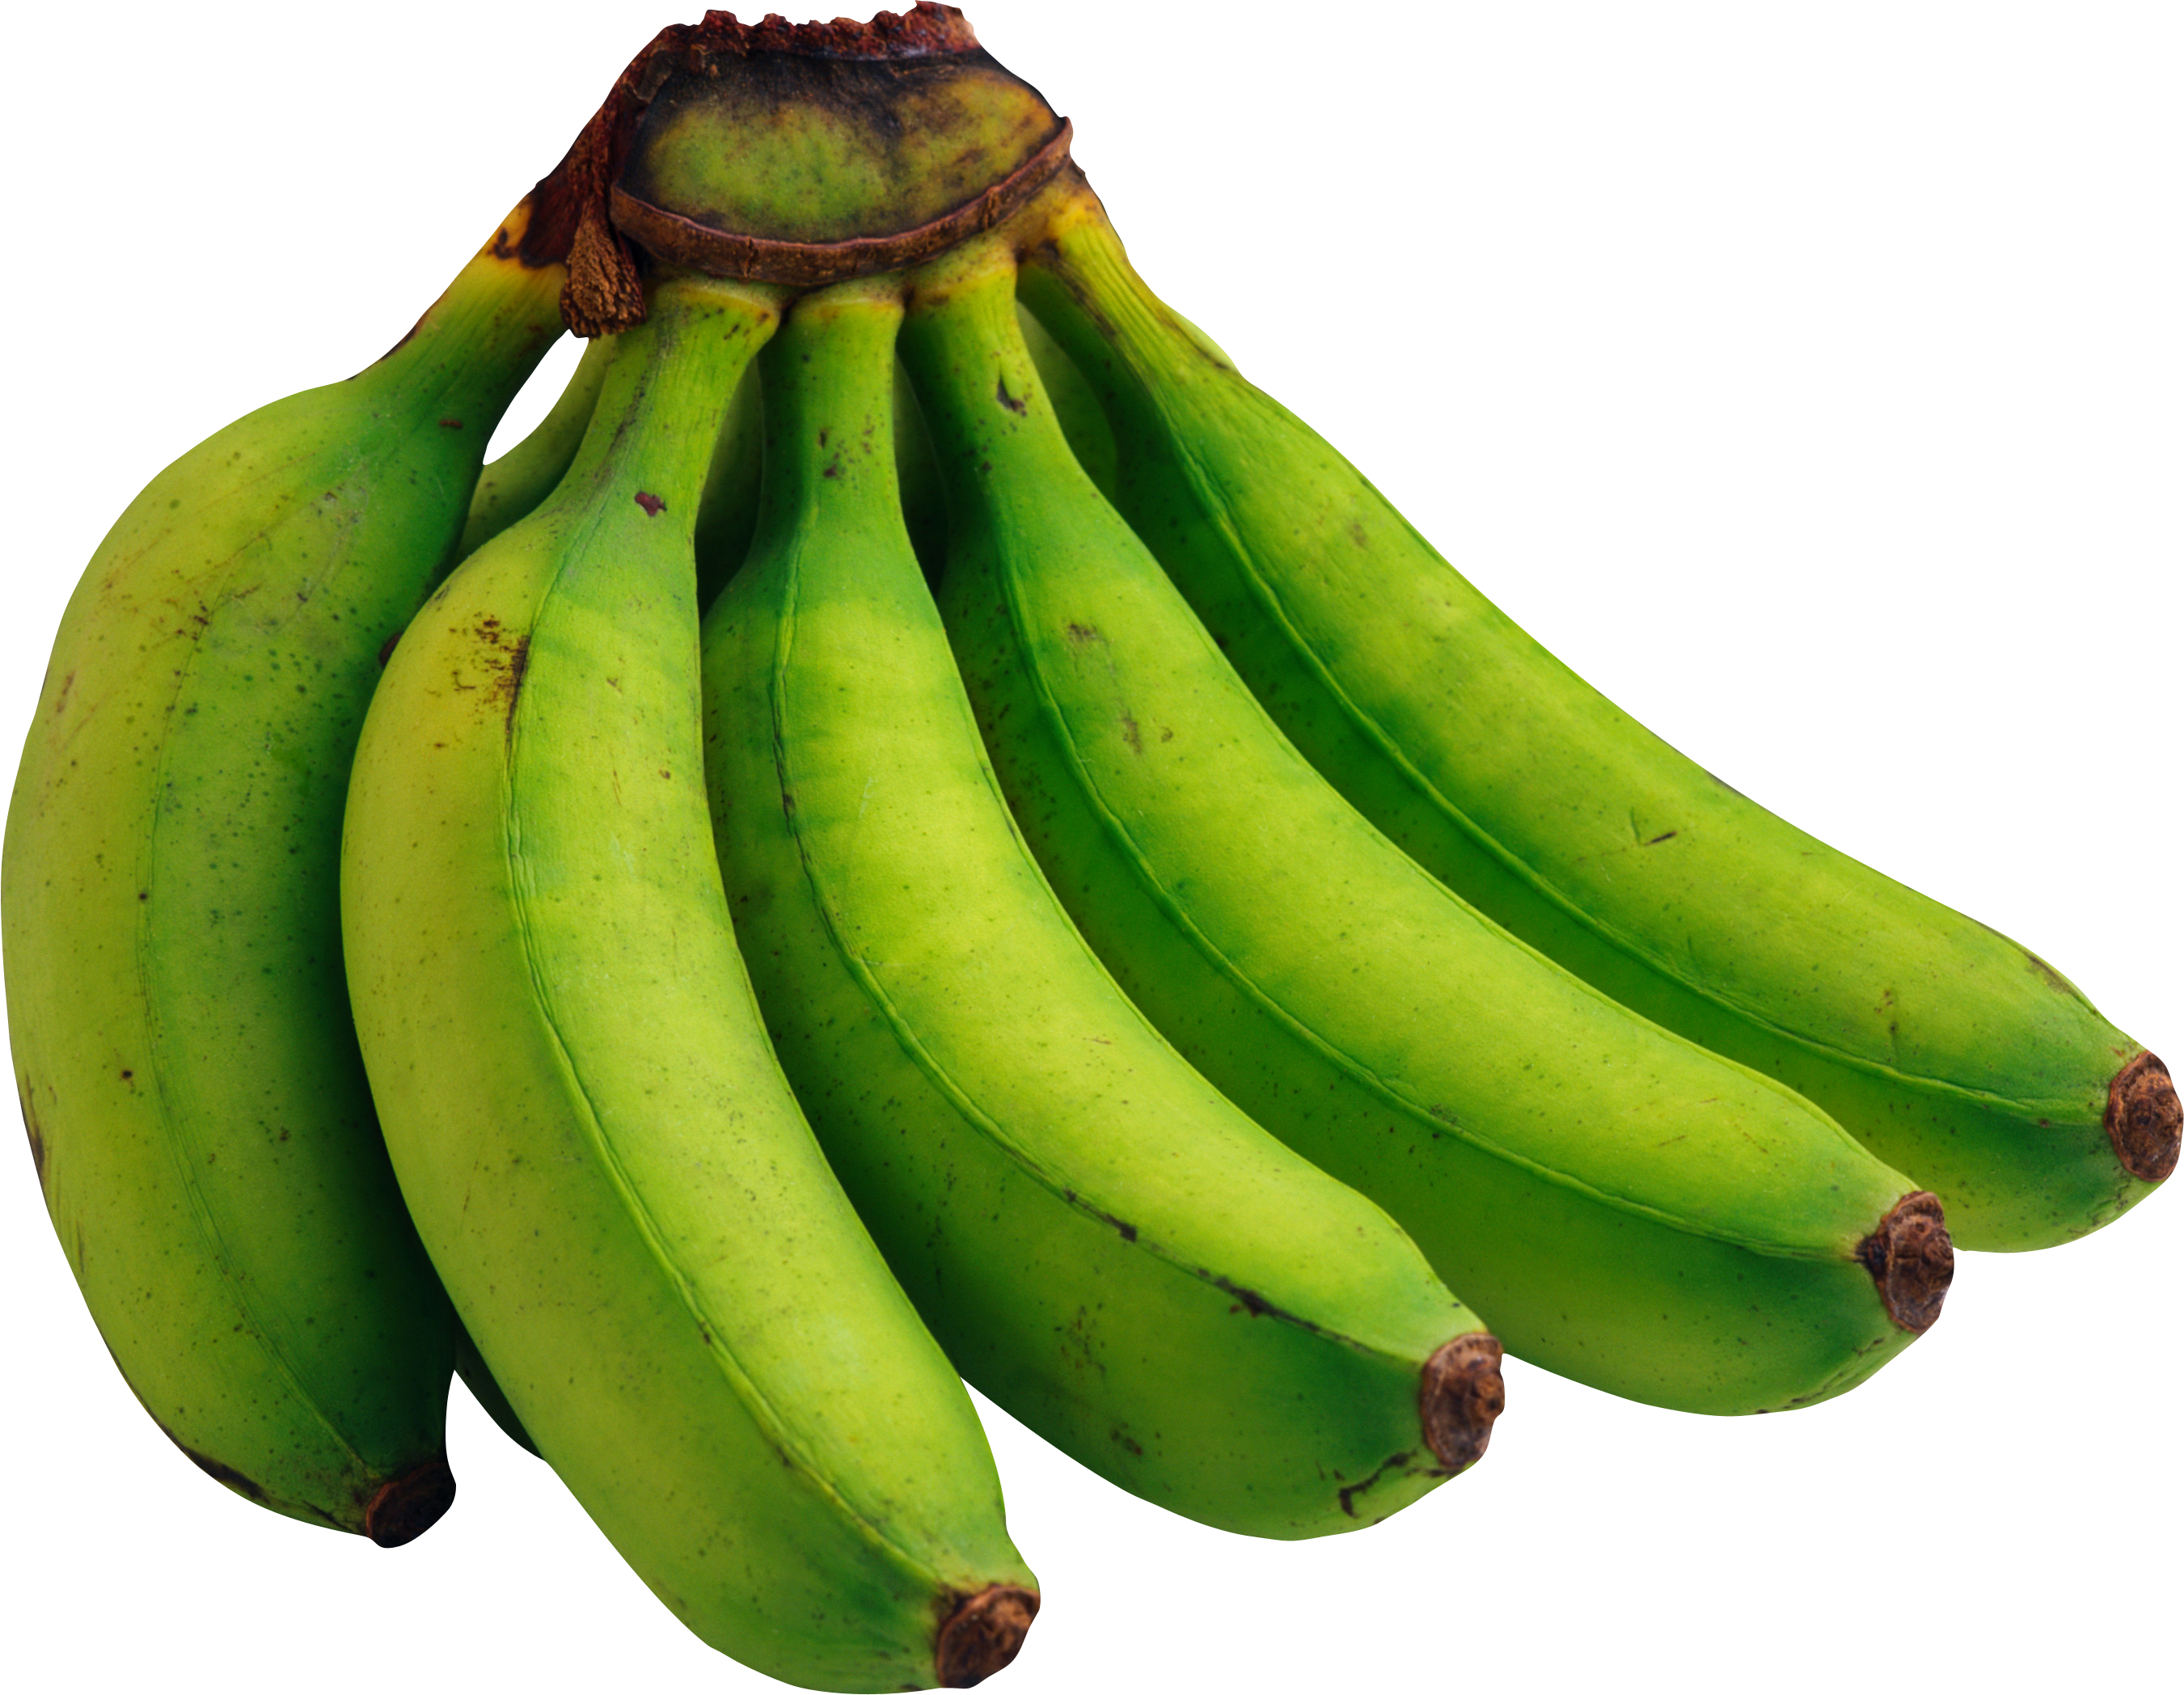 green bananas PNG image, free picture